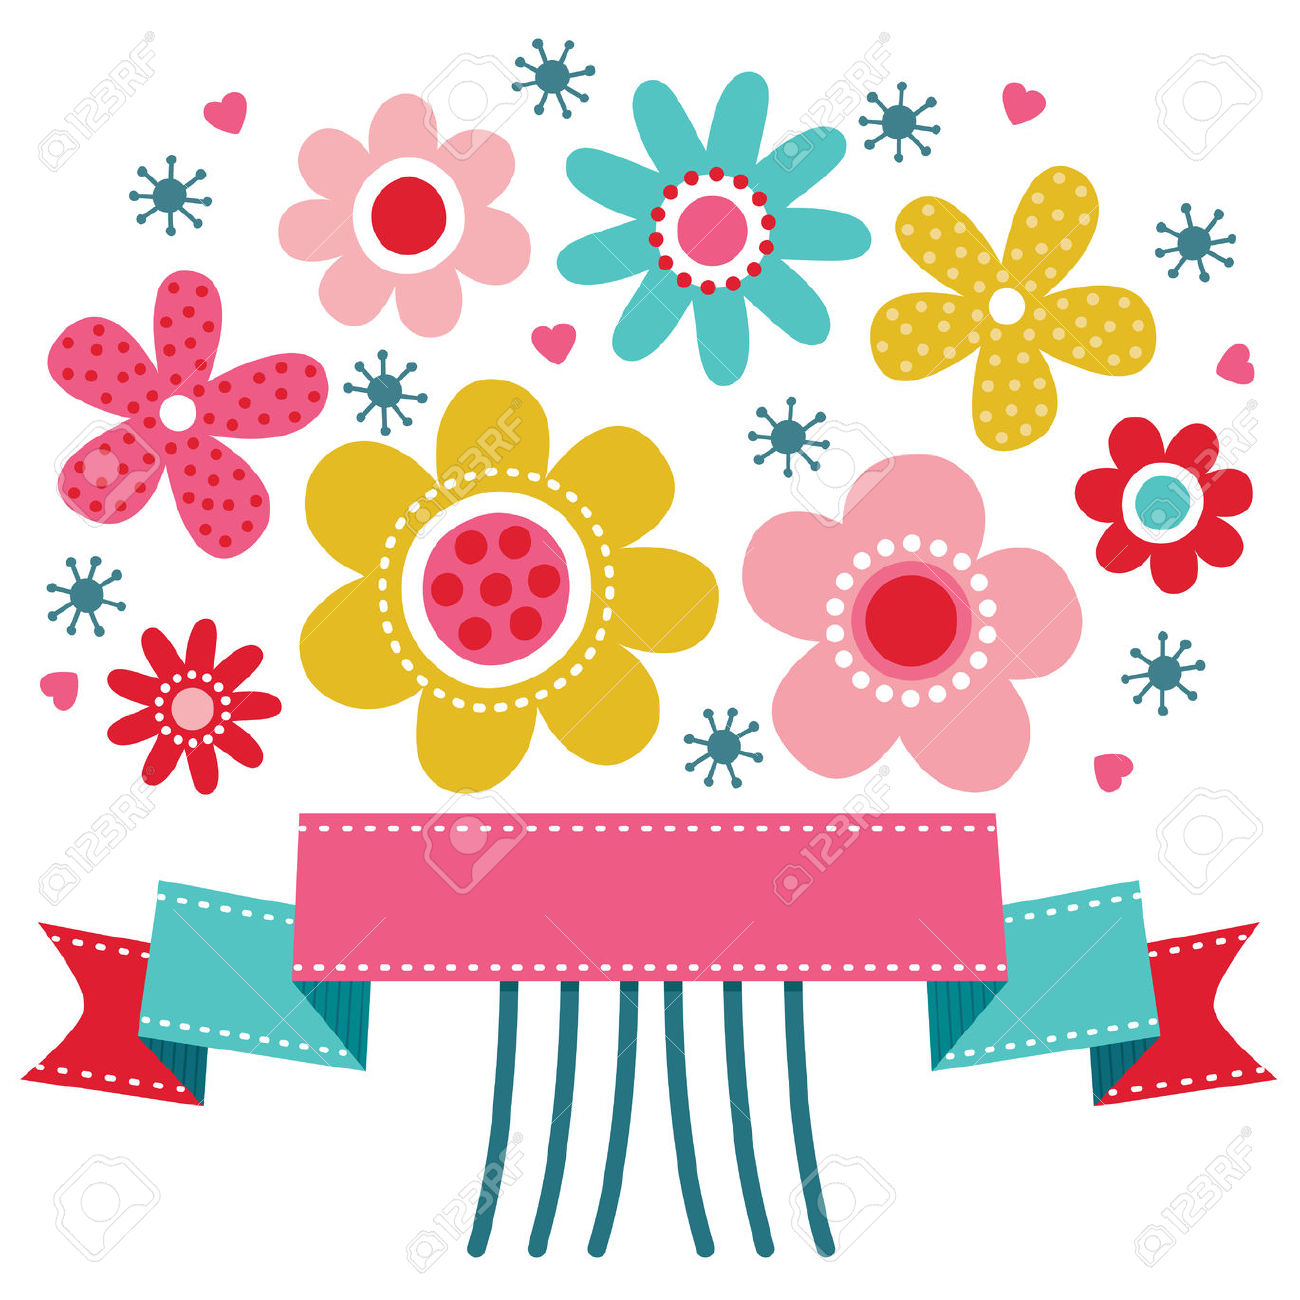 Cute Greeting Card Template With Bright Colored Retro Flower.